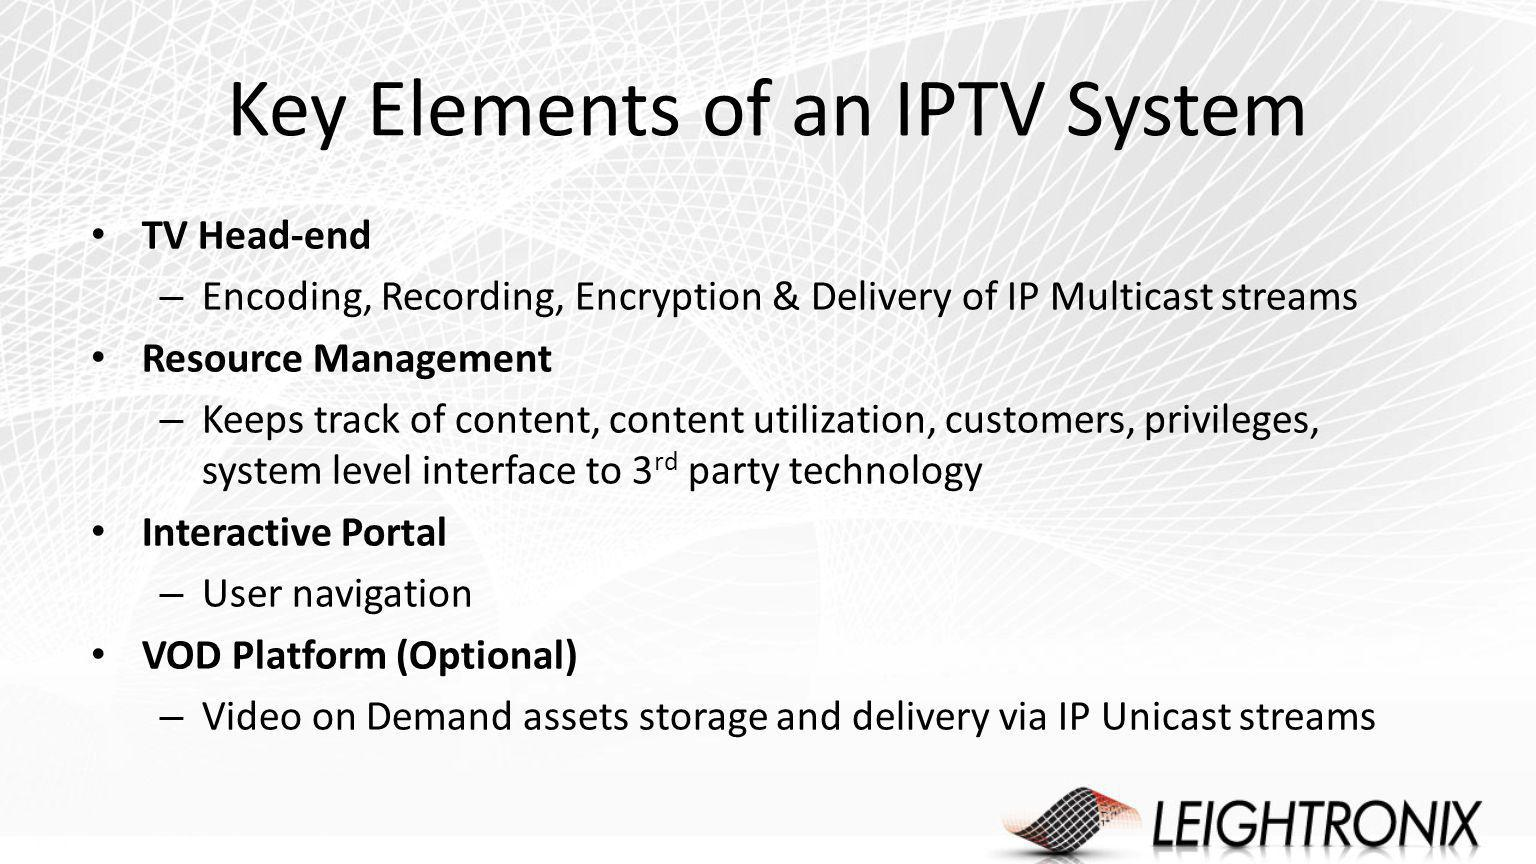 Key Elements of an IPTV System TV Head-end – Encoding, Recording, Encryption & Delivery of IP Multicast streams Resource Management – Keeps track of content, content utilization, customers, privileges, system level interface to 3 rd party technology Interactive Portal – User navigation VOD Platform (Optional) – Video on Demand assets storage and delivery via IP Unicast streams